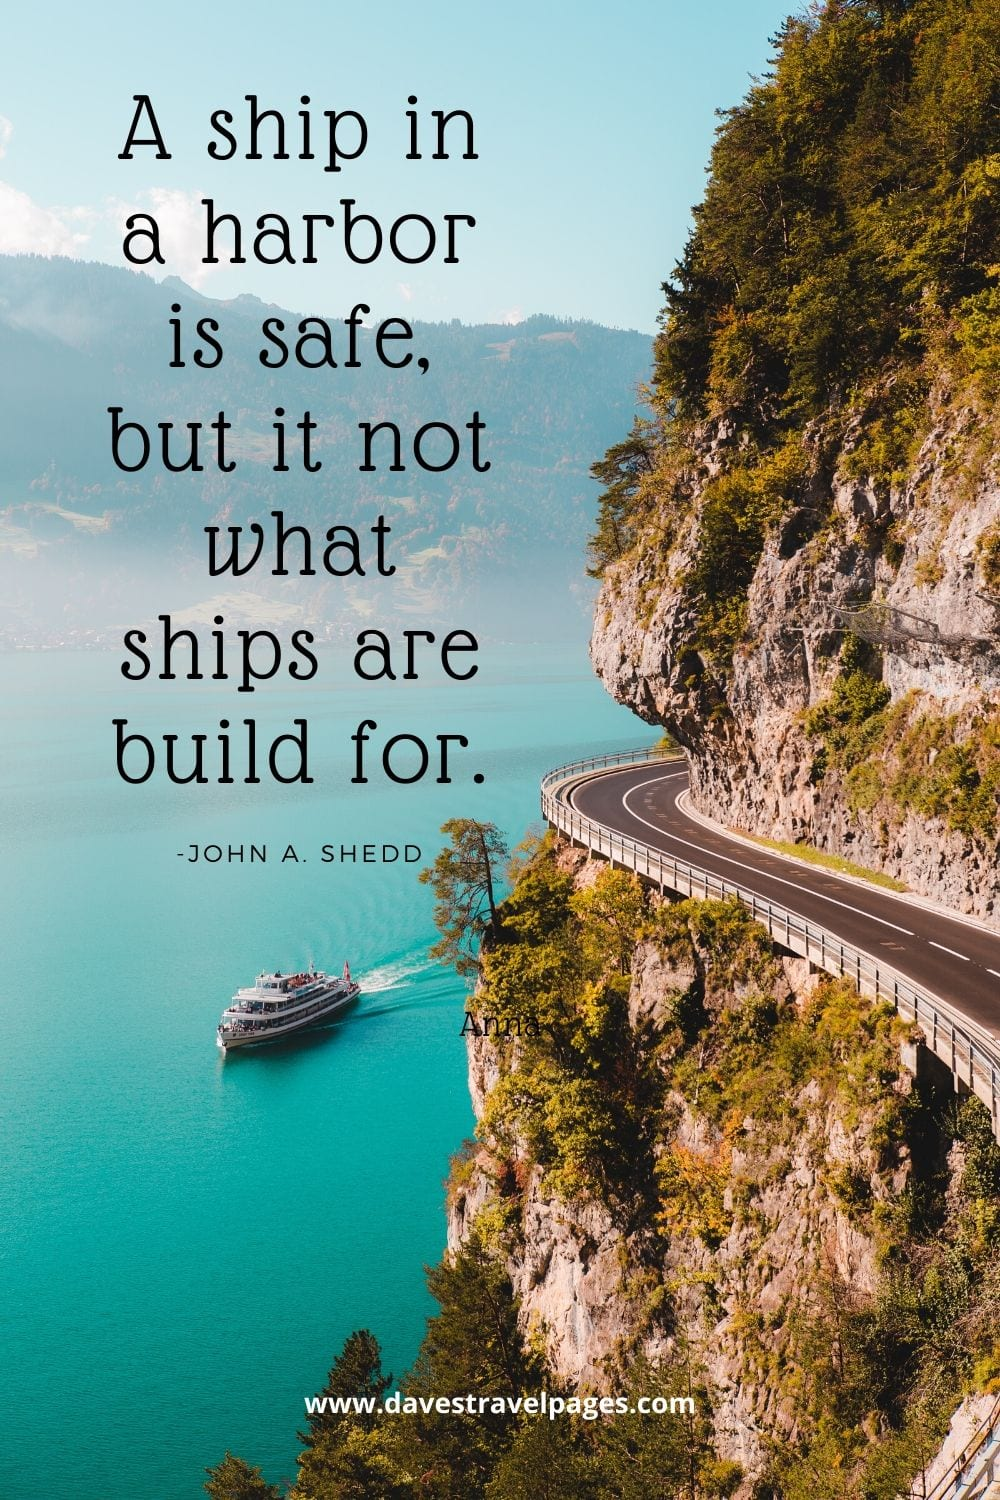 "Sailing quote - ""A ship in a harbor is safe, but it not what ships are build for."" -John A. Shedd"